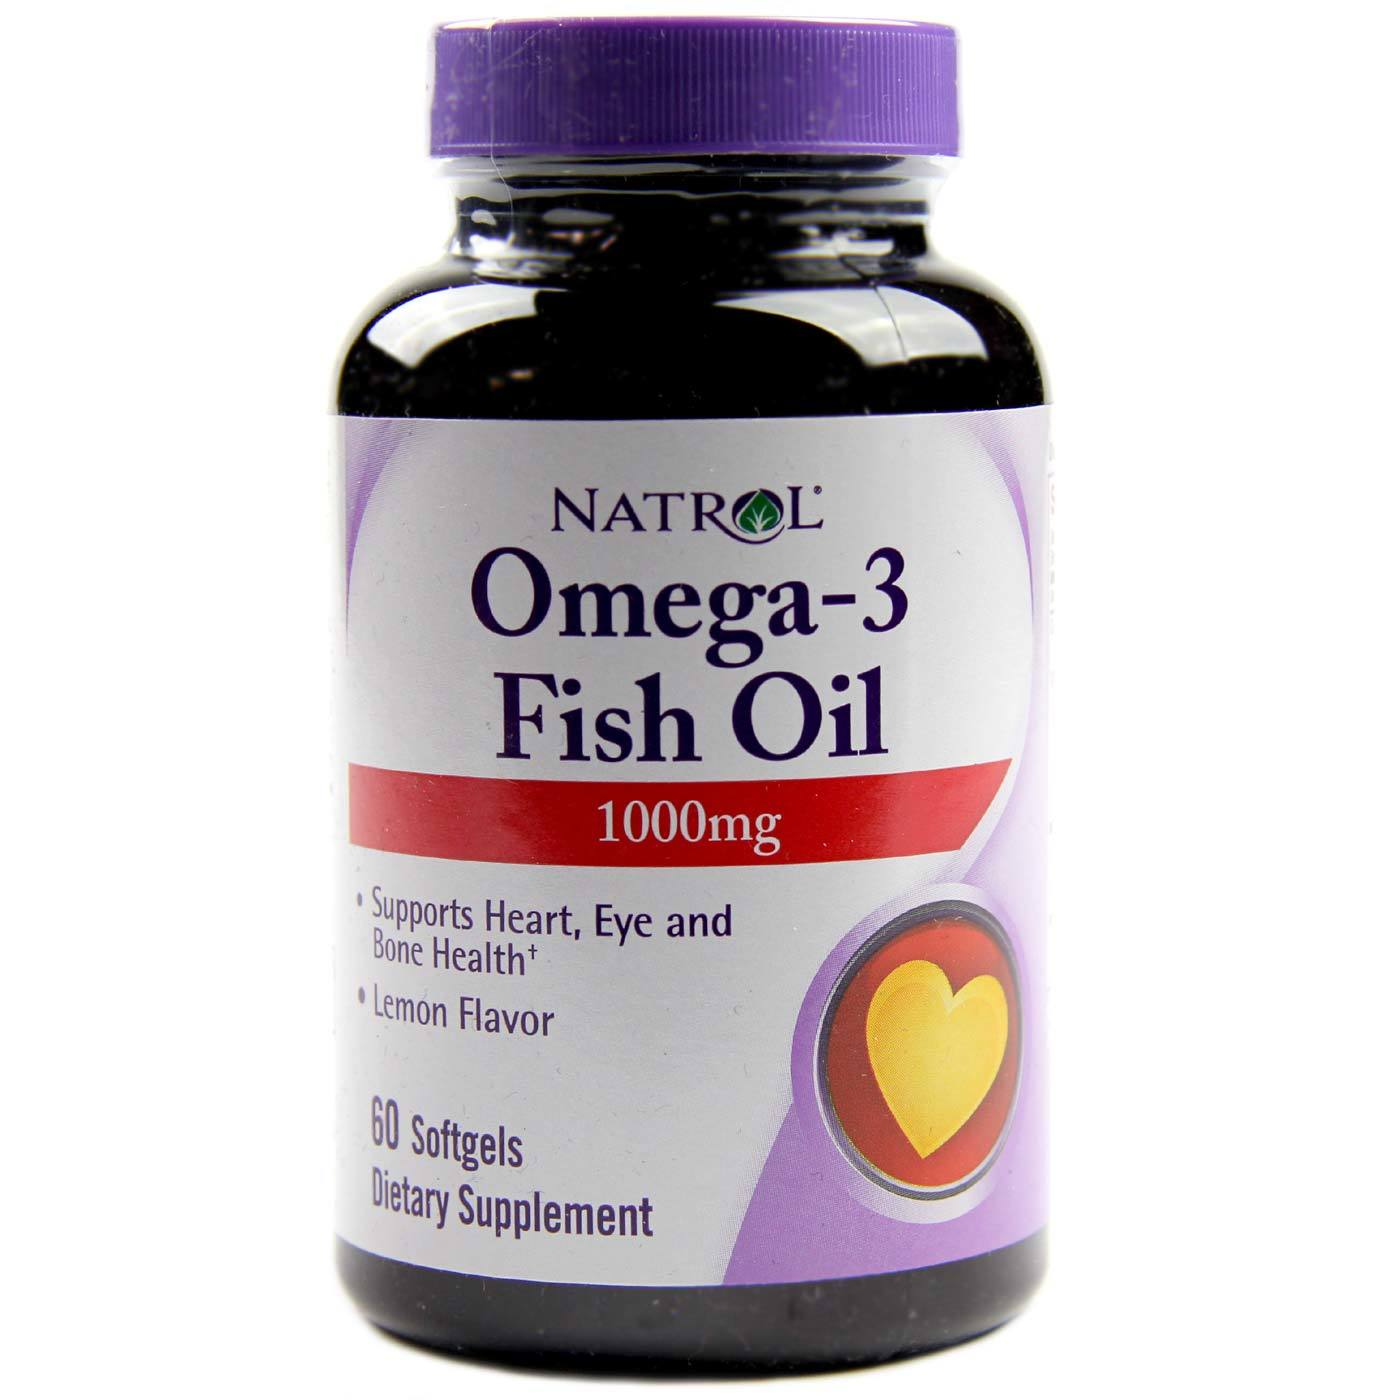 Natrol omega 3 fish oil lemon 1000 mg 60 softgels for Fish omega 3